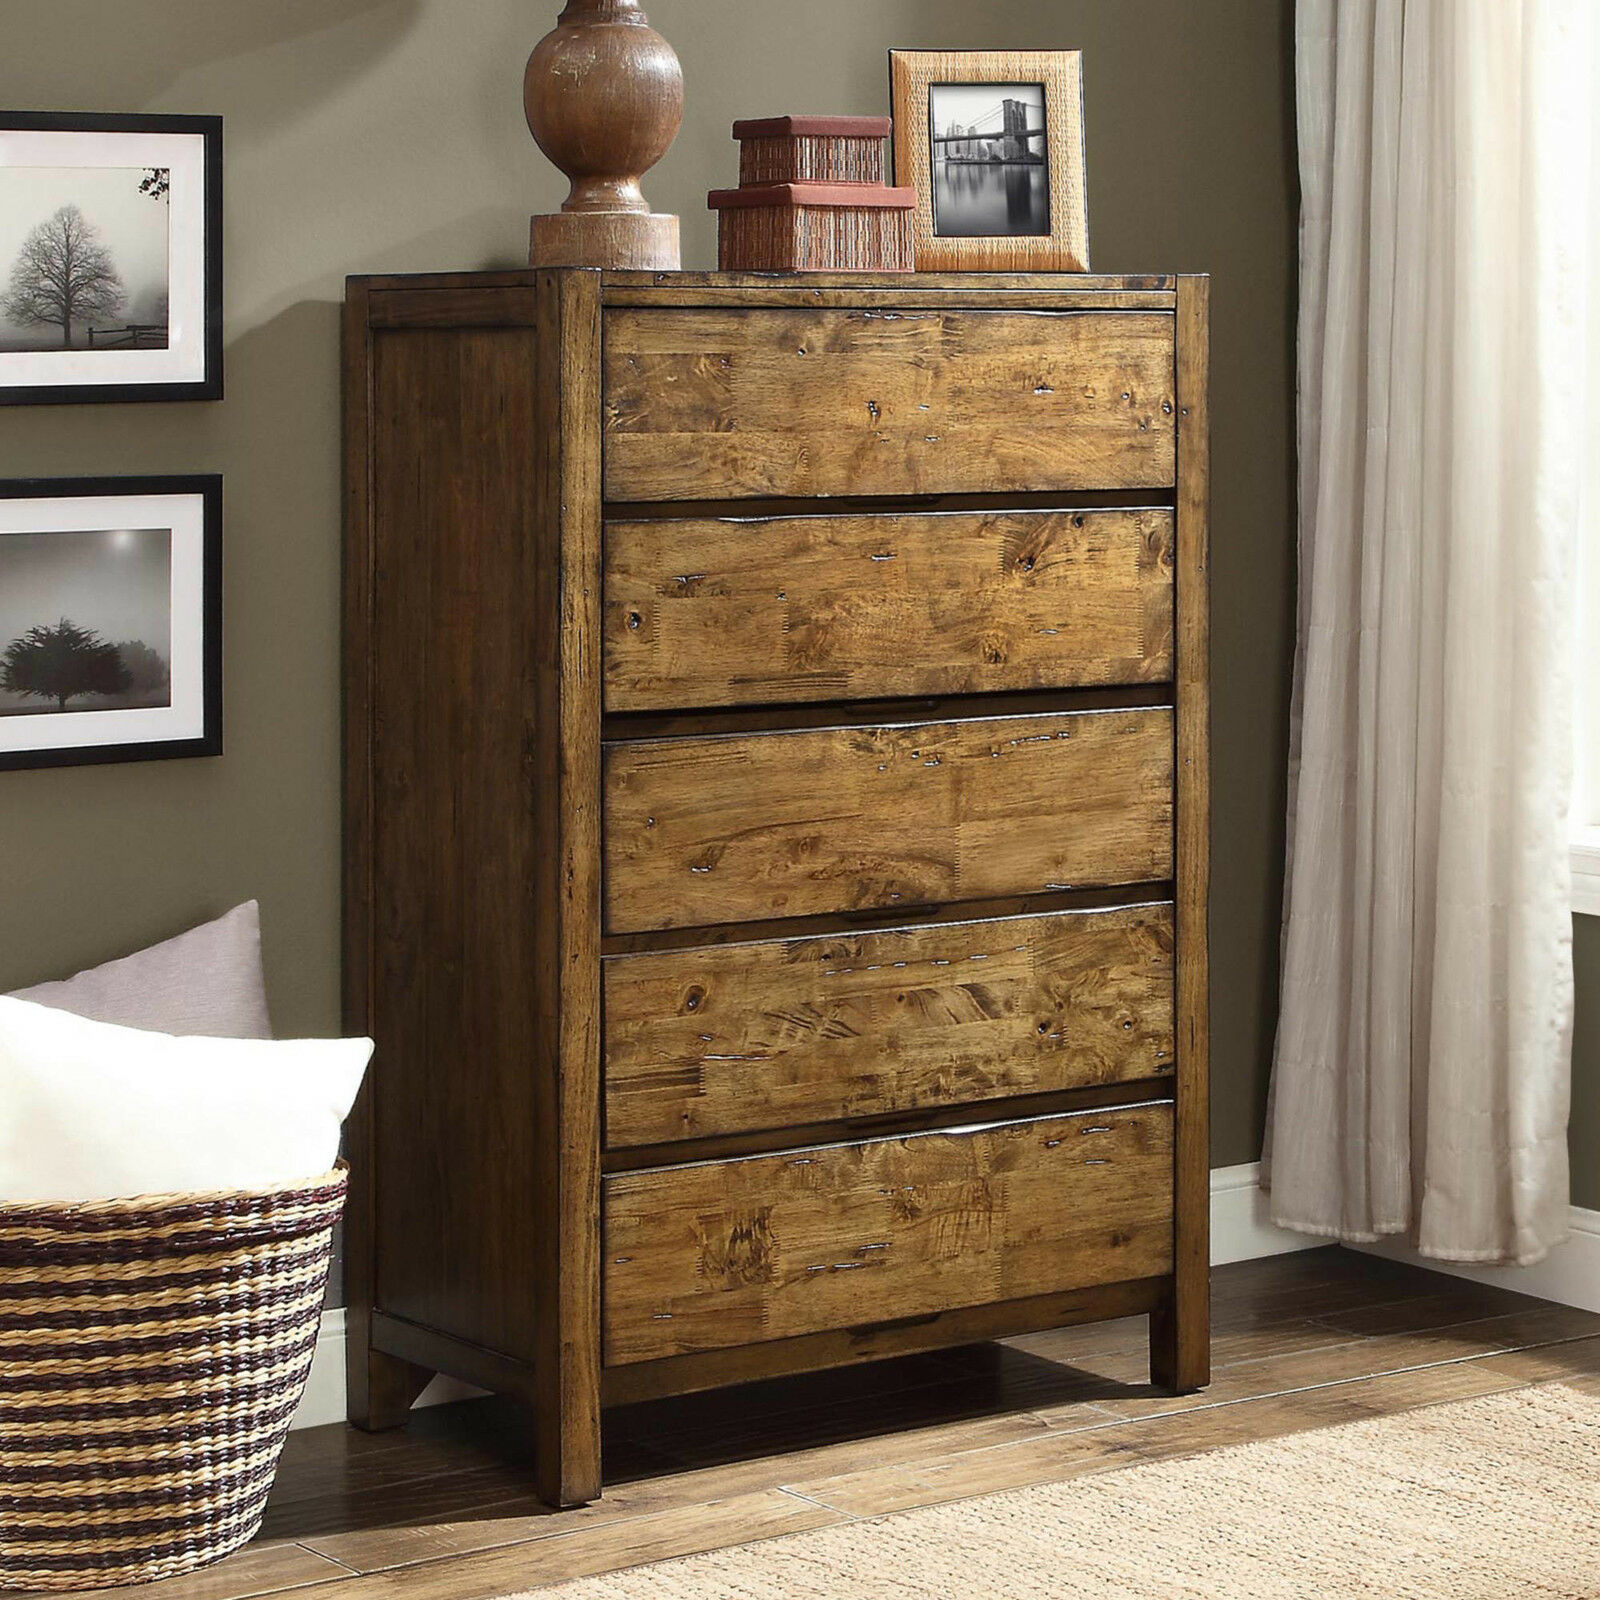 Details About Chest Of 5 Drawer Dresser Solid Wood Rustic Barn Finish Bedroom Furniture